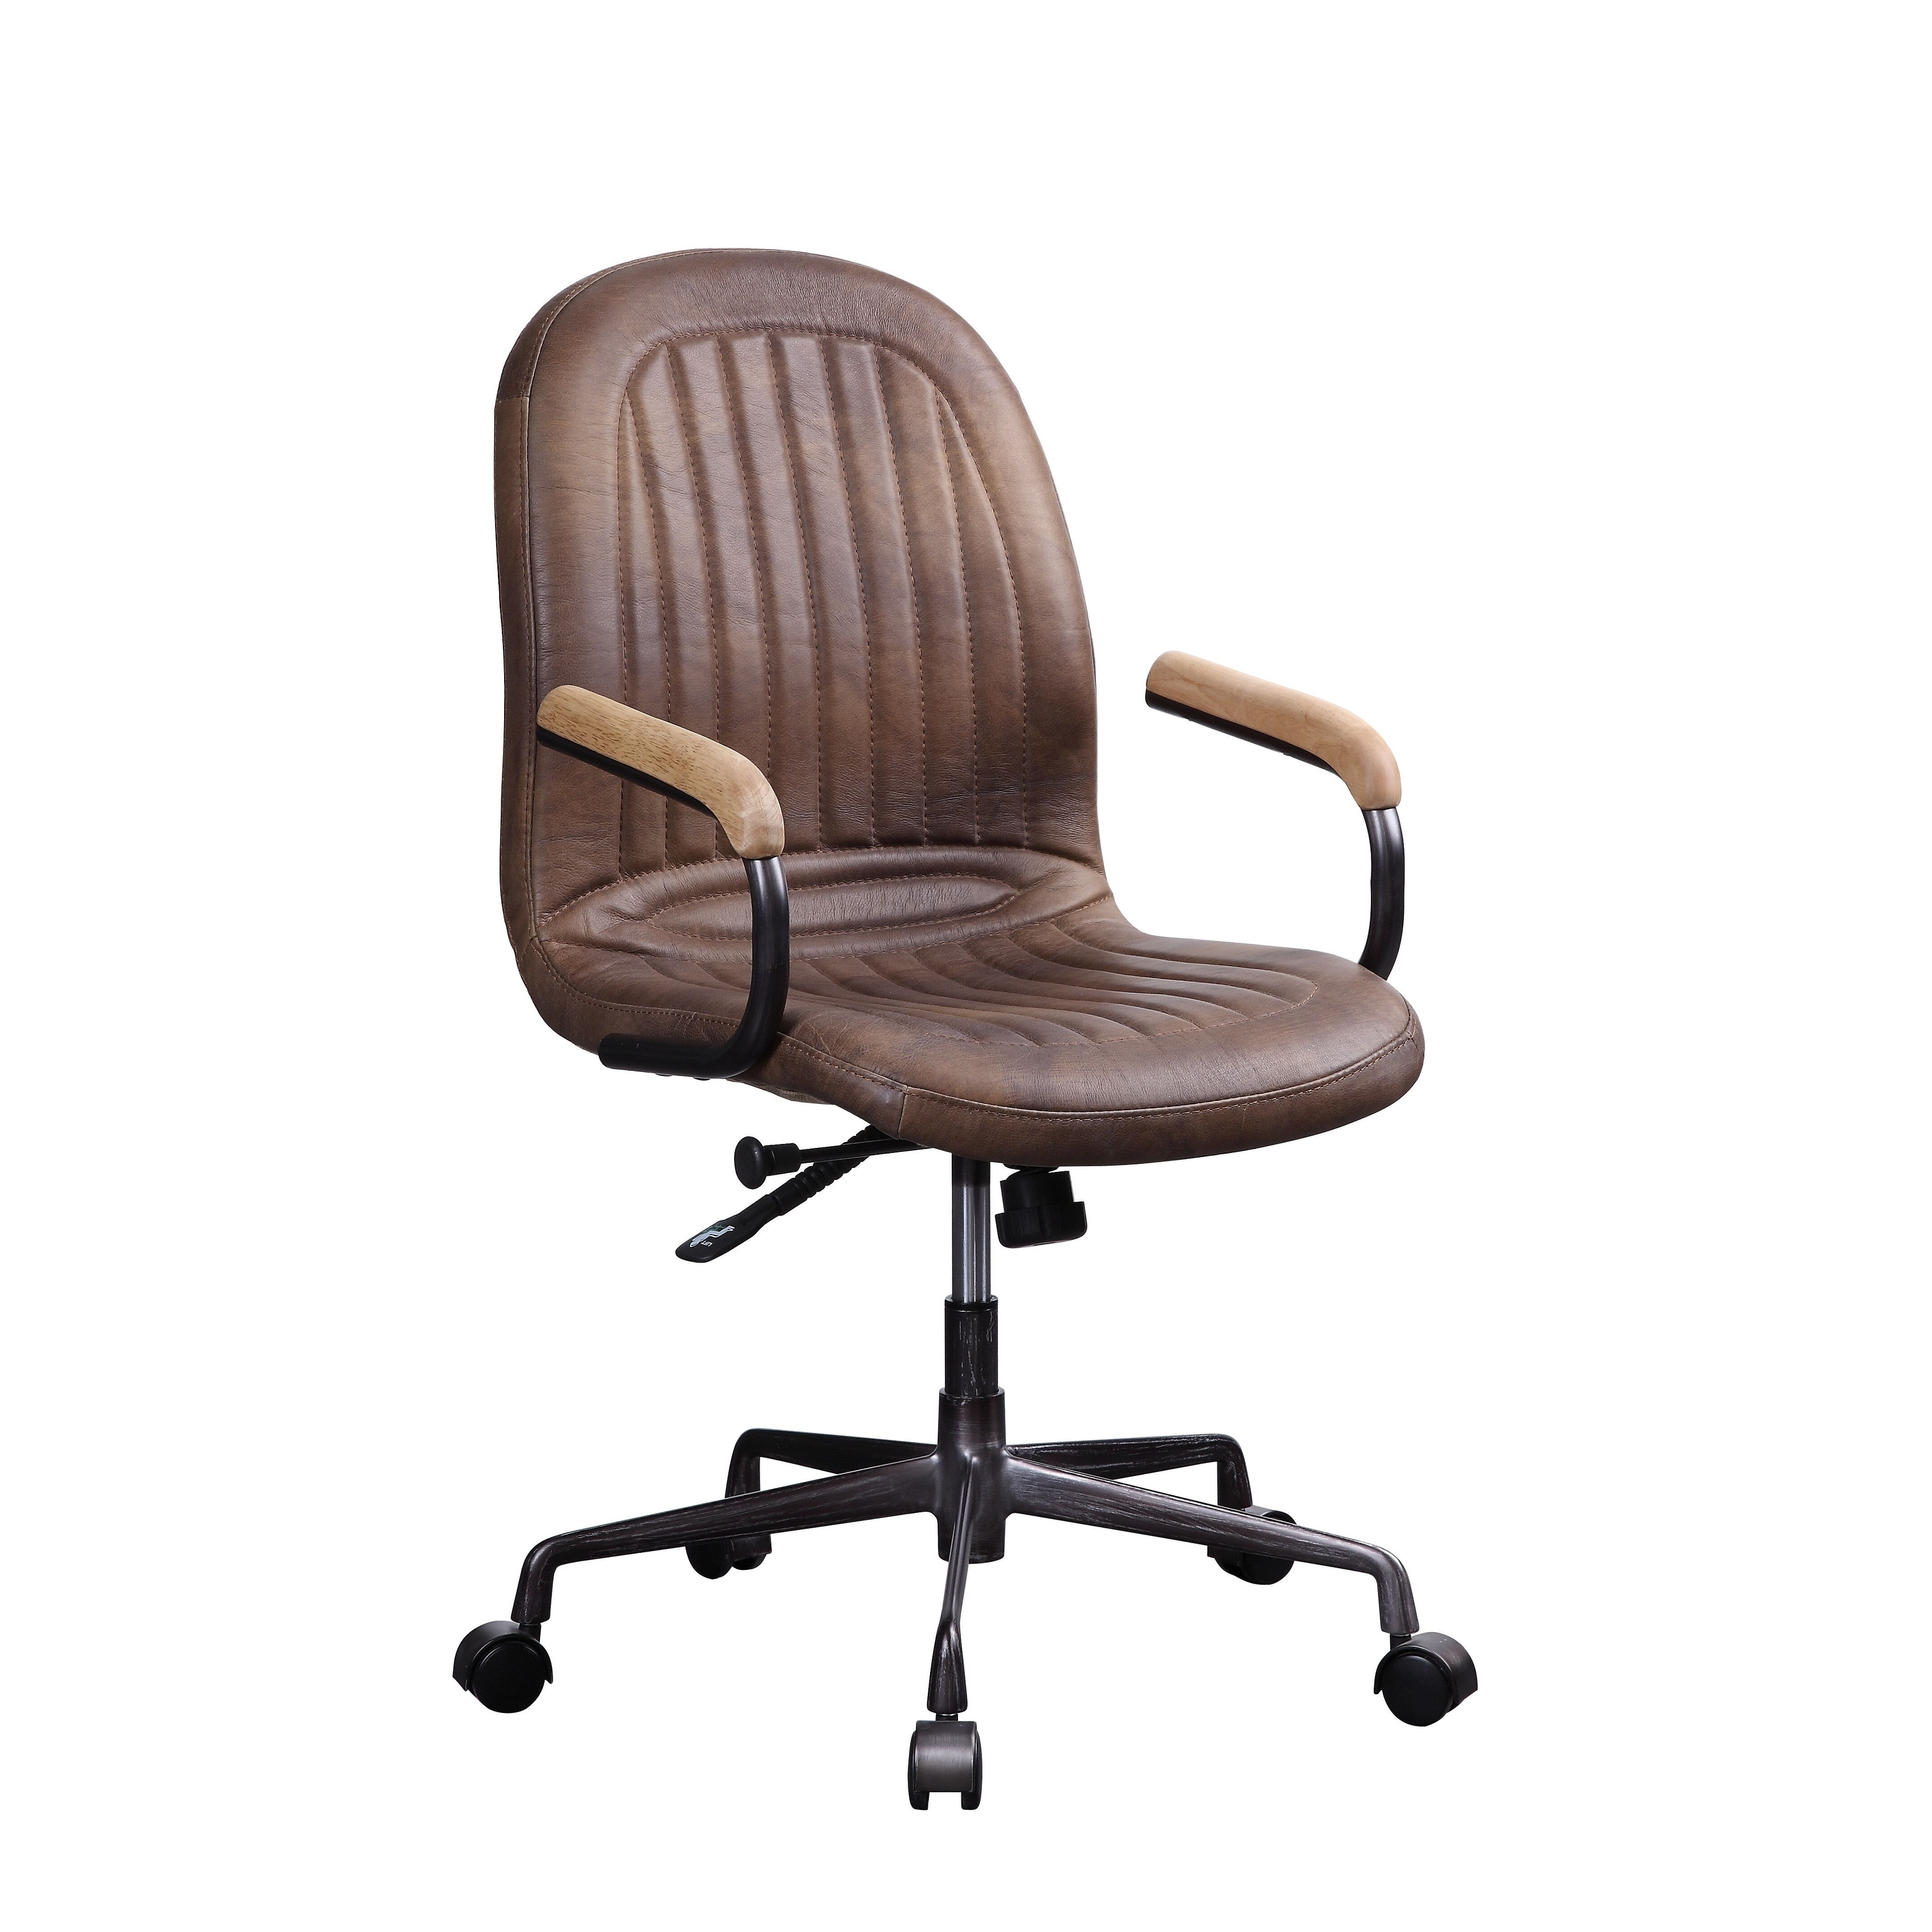 Astonishing Acis Vintage Chocolate Top Grain Leather Executive Office Chair Gamerscity Chair Design For Home Gamerscityorg